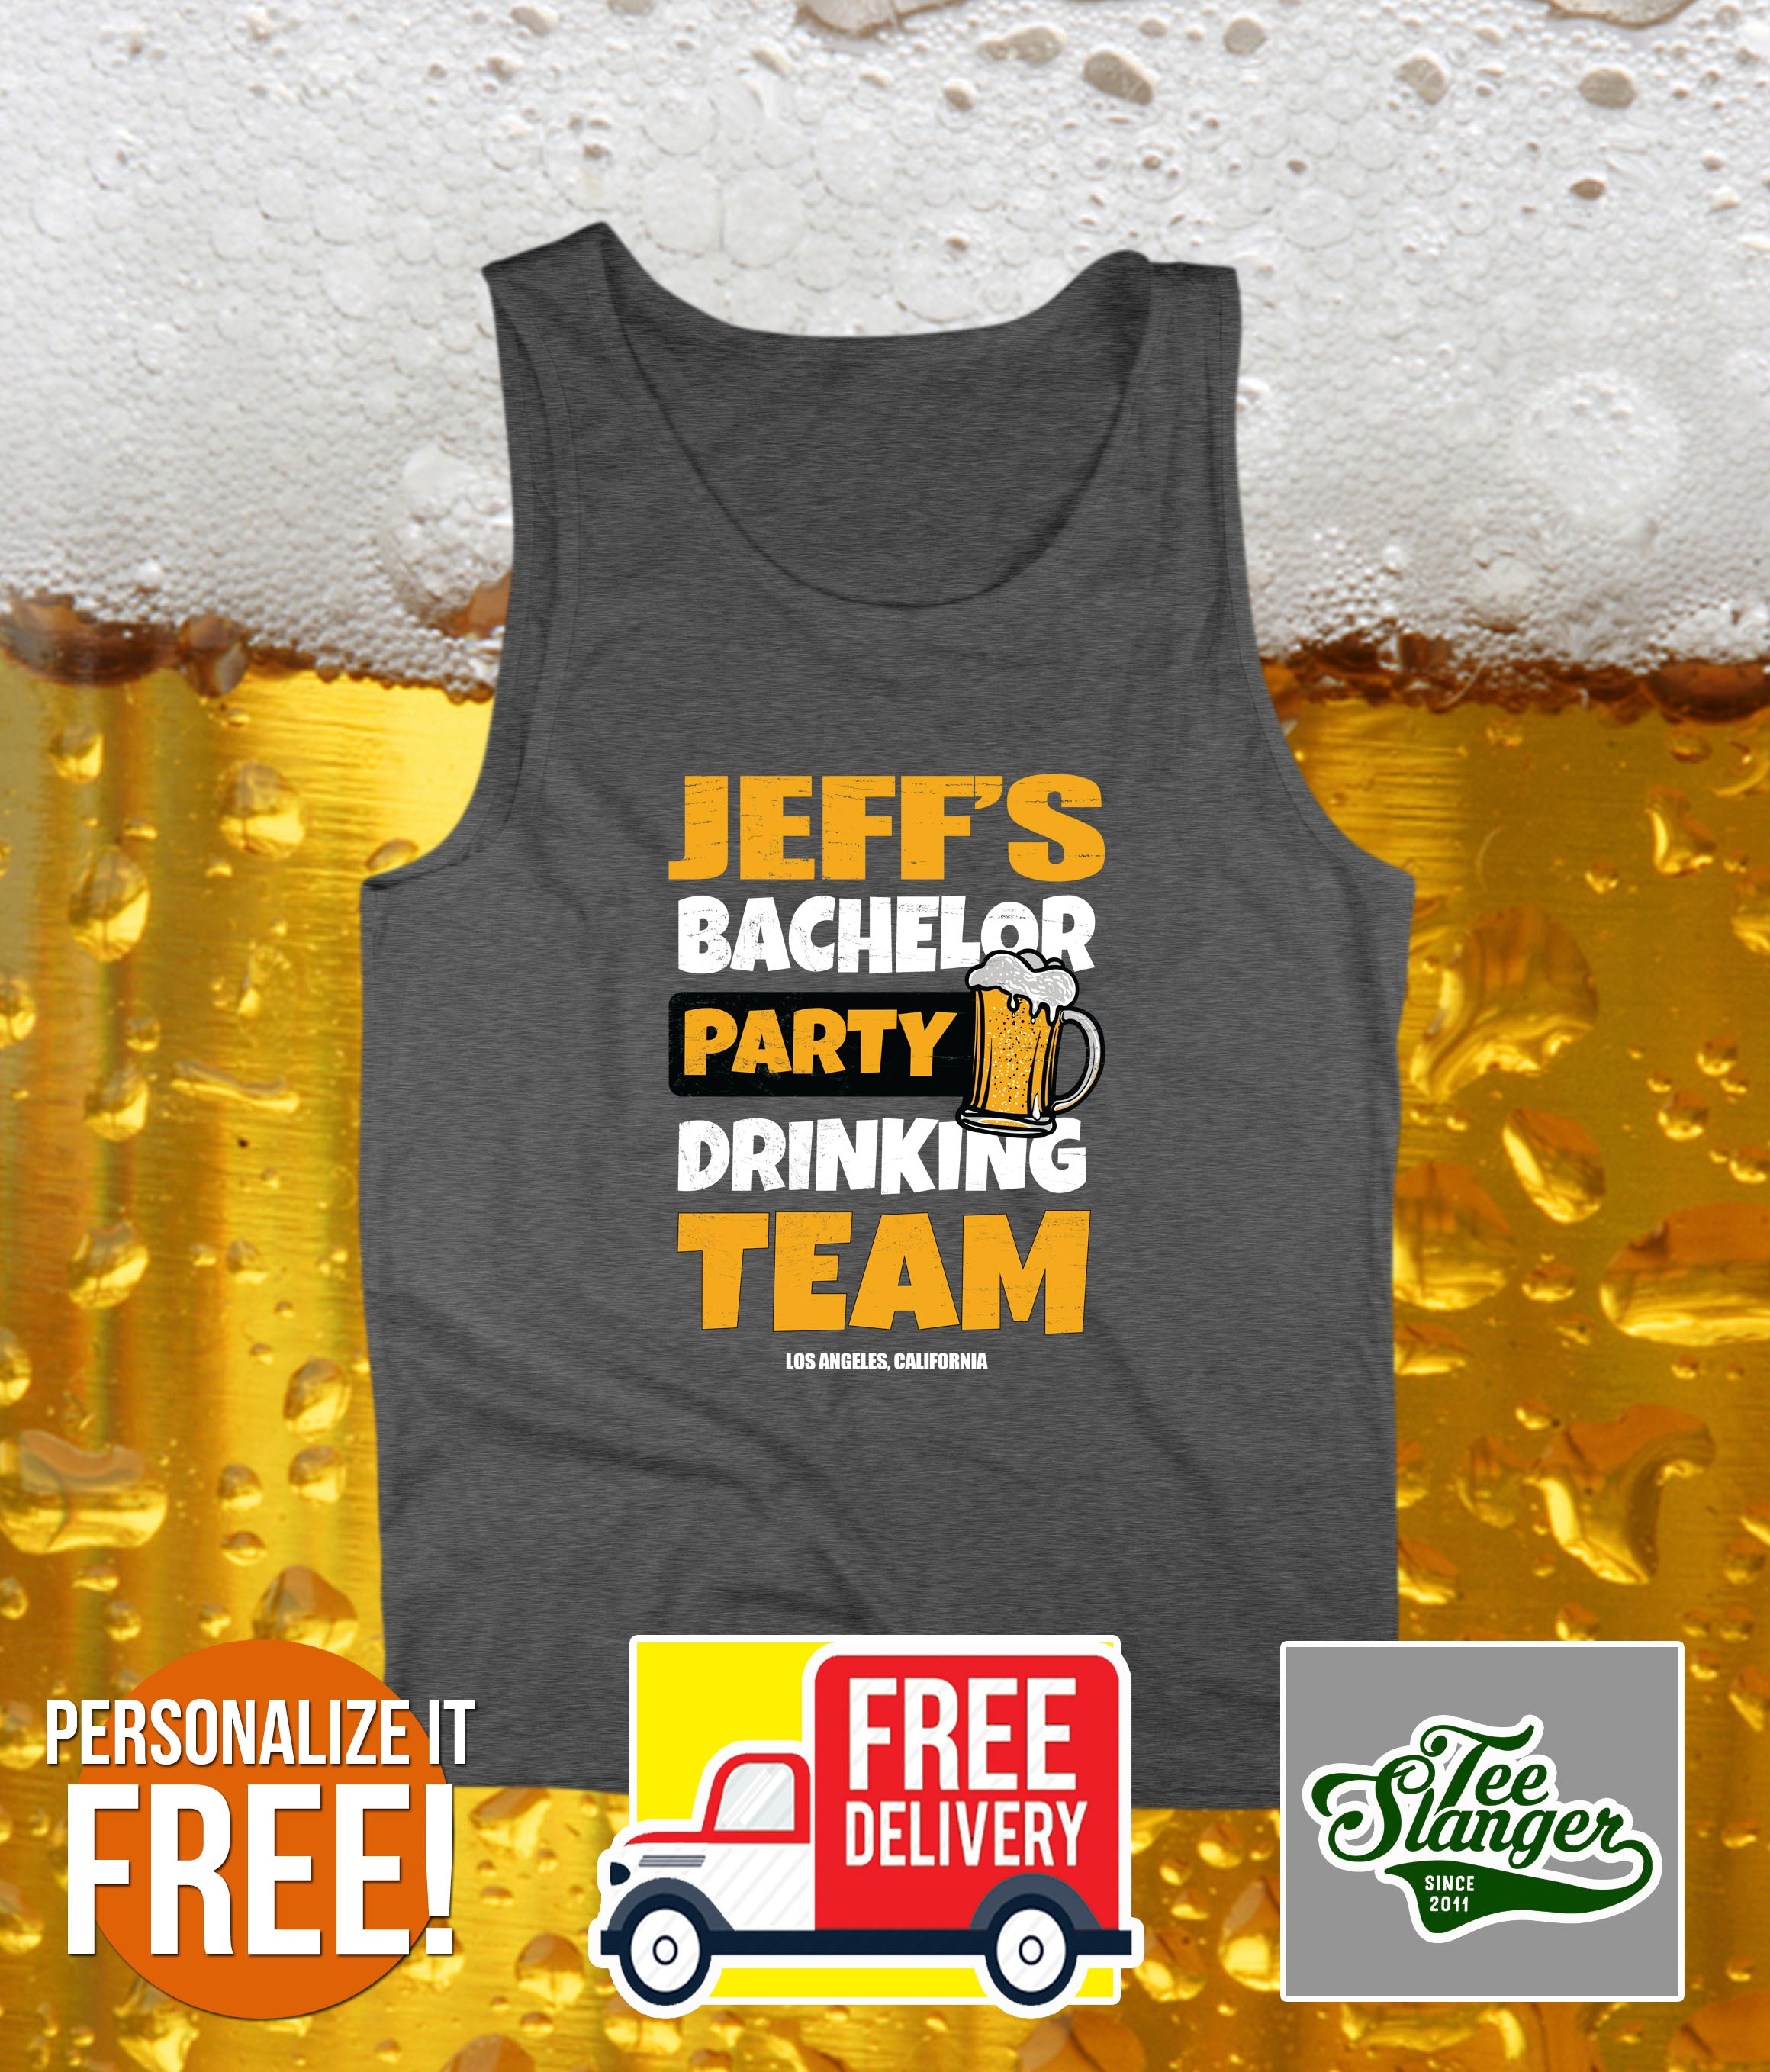 PERSONALIZED BACHELOR PARTY TANK TOP